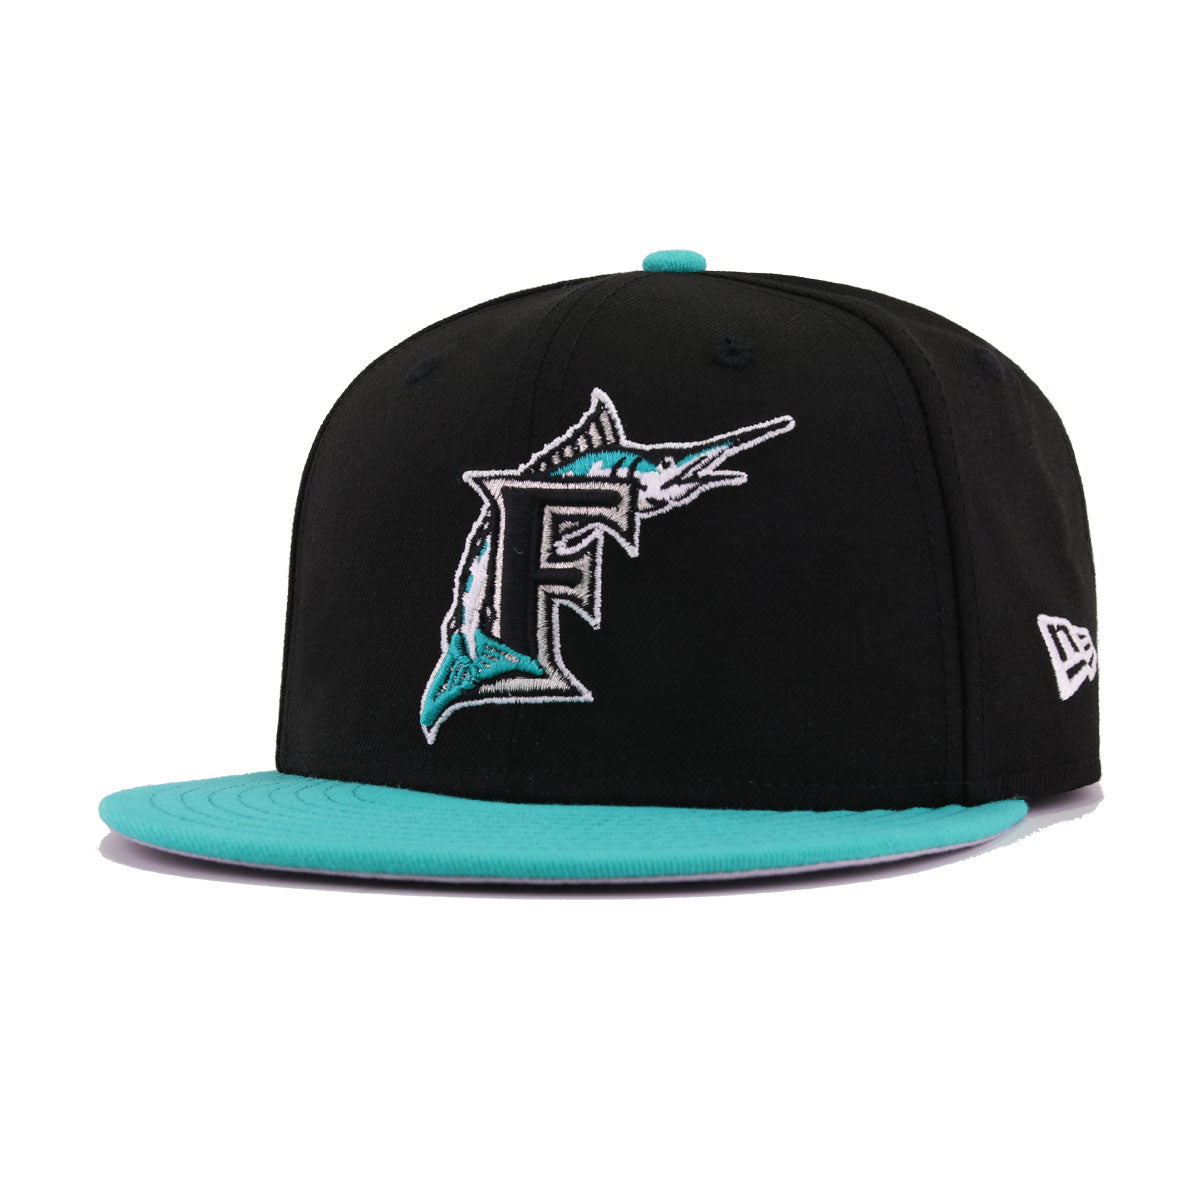 Florida Marlins Black Teal World Series 100th Anniversary Cooperstown New Era 9Fifty Snapback